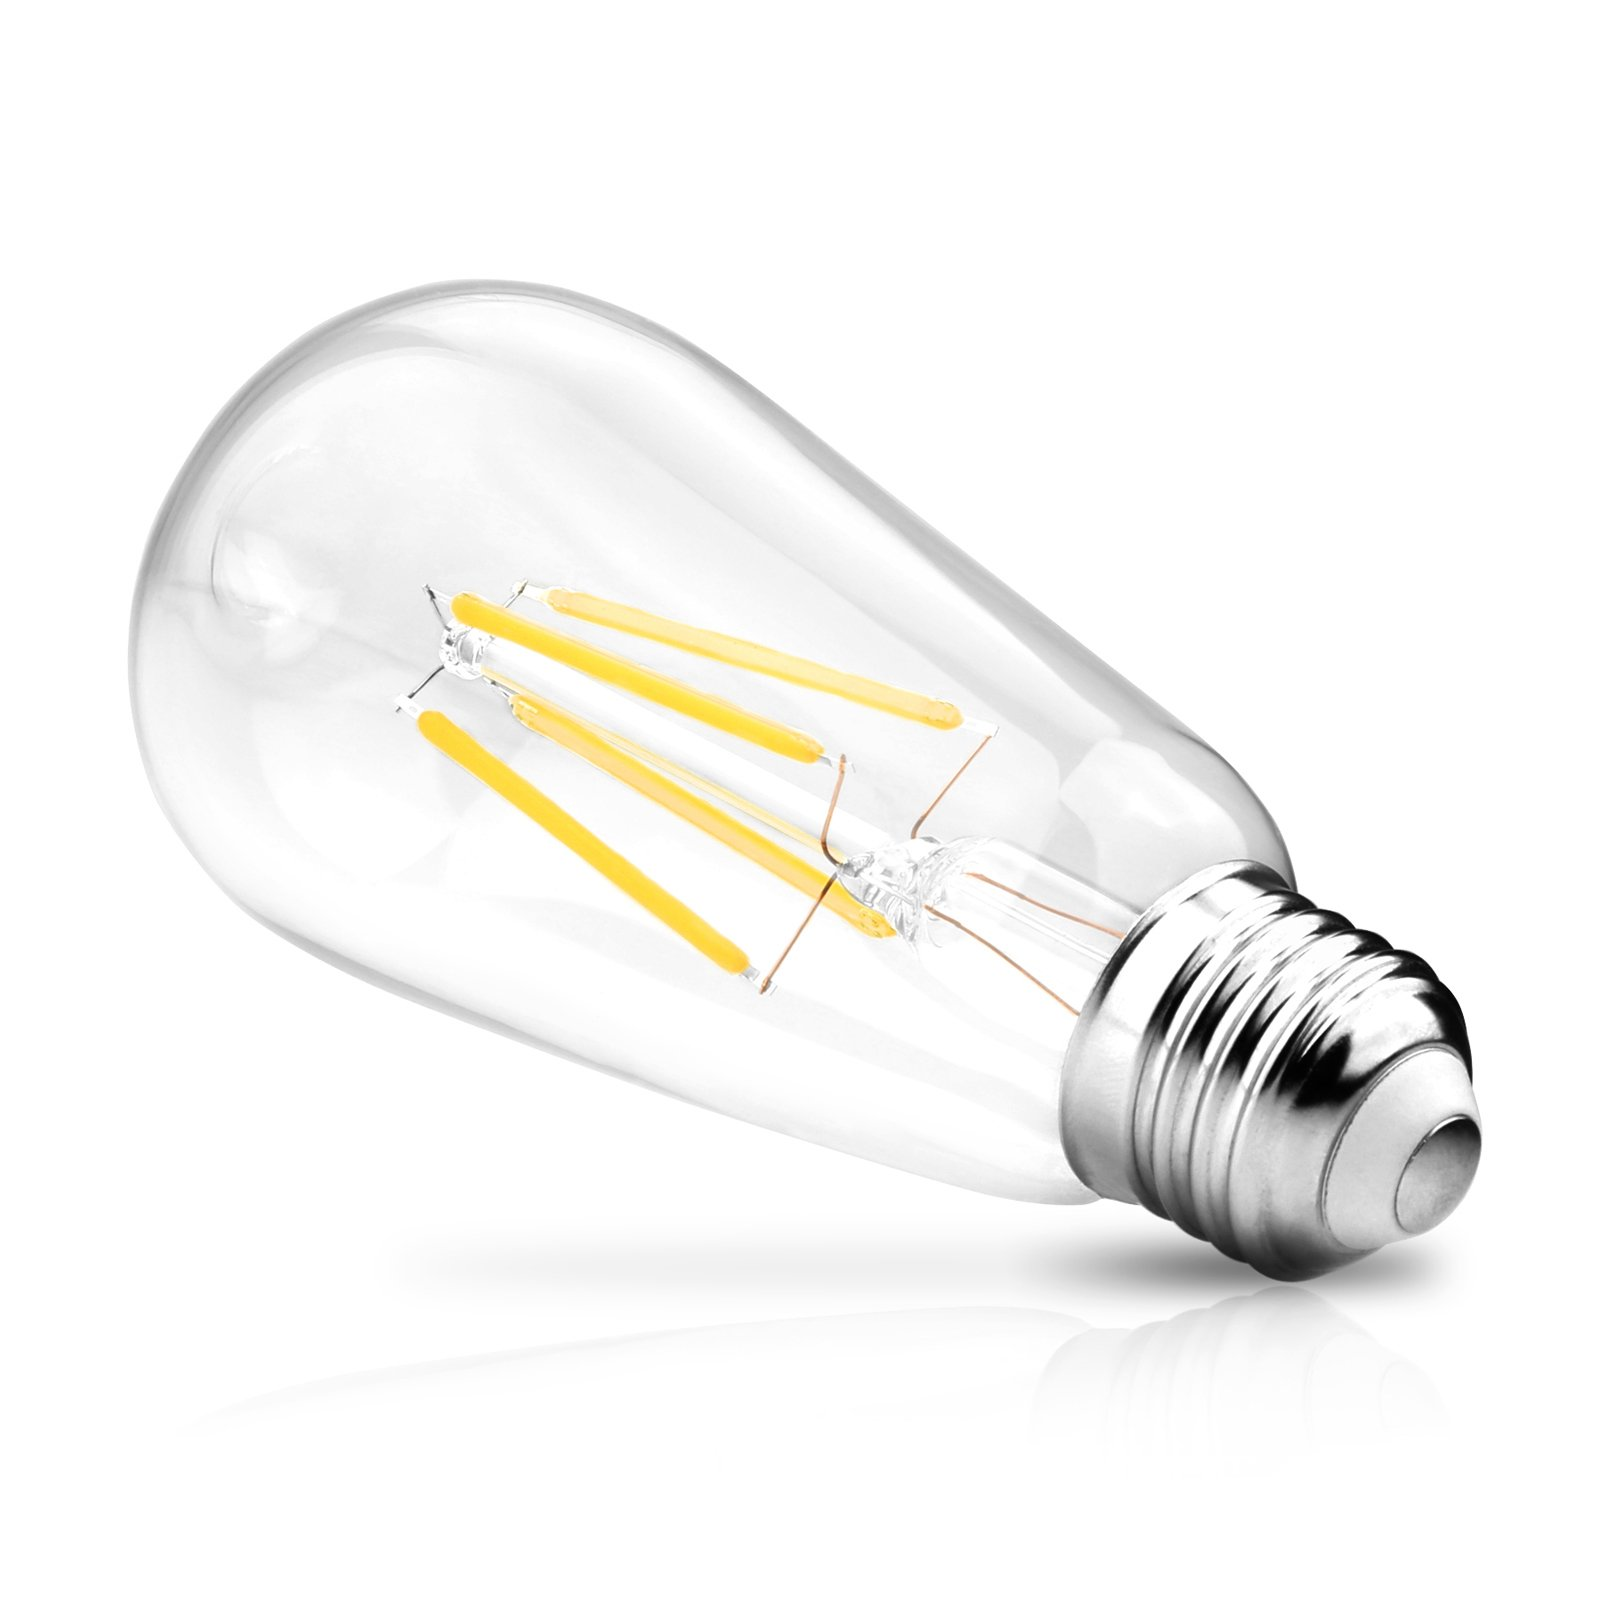 Ascher Vintage LED Edison Bulbs, 6W, Equivalent 60W, High Brightness Daylight White 4000K, ST58 Antique LED Filament Bulbs, E26 Medium Base, Non Dimmable, Clear Glass, Pack of 6 by Ascher (Image #5)